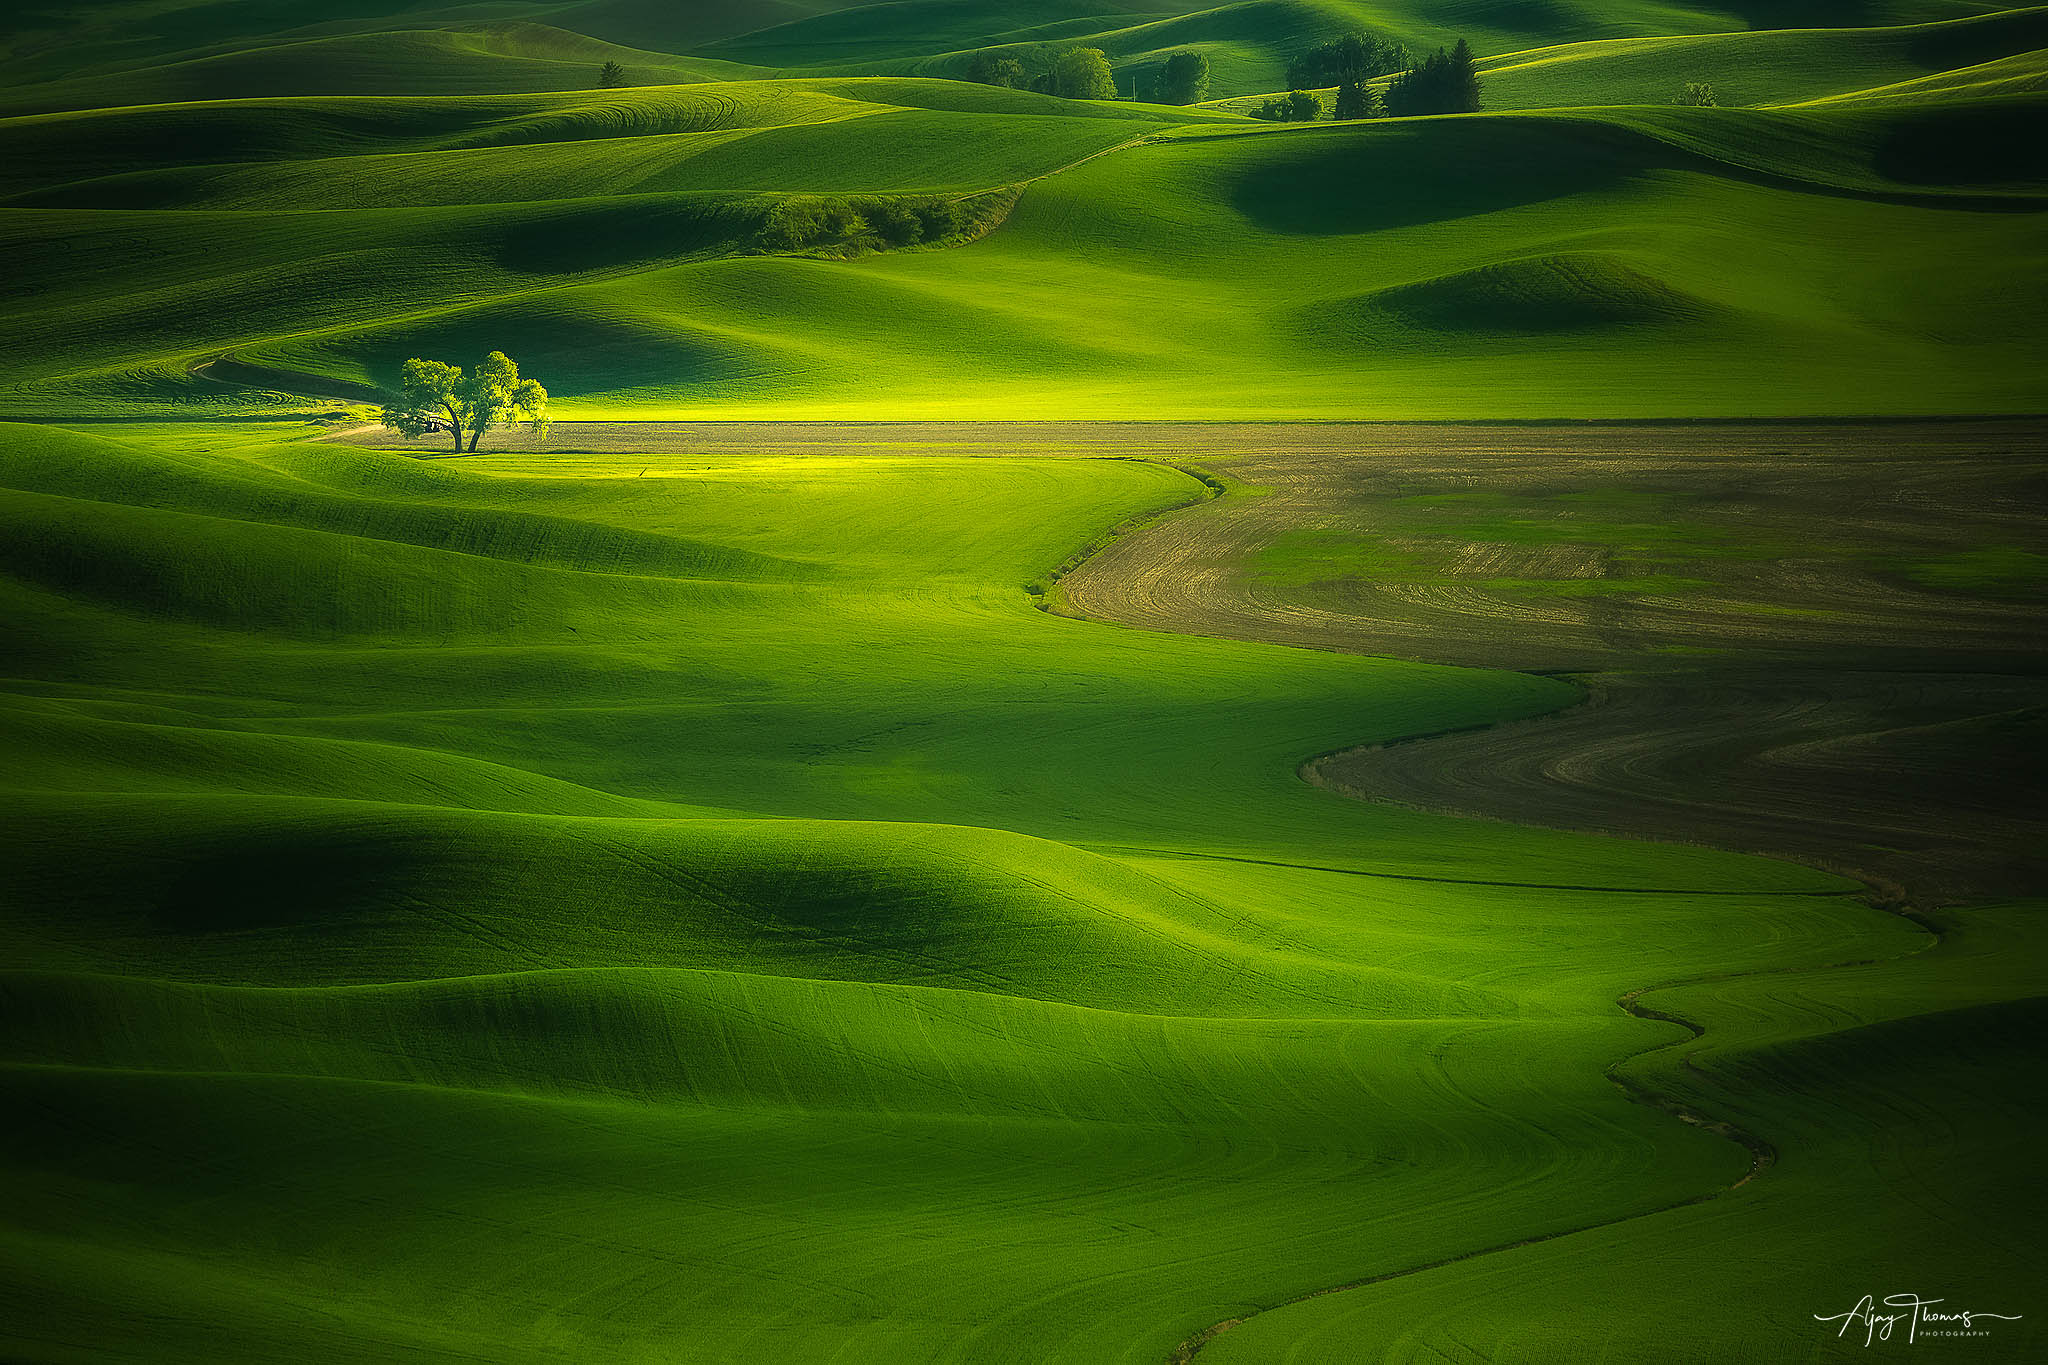 I shot this lone tree at Steptoe Butte state park, and it was worth the 1,000km ride that I took to reach the destination. The...